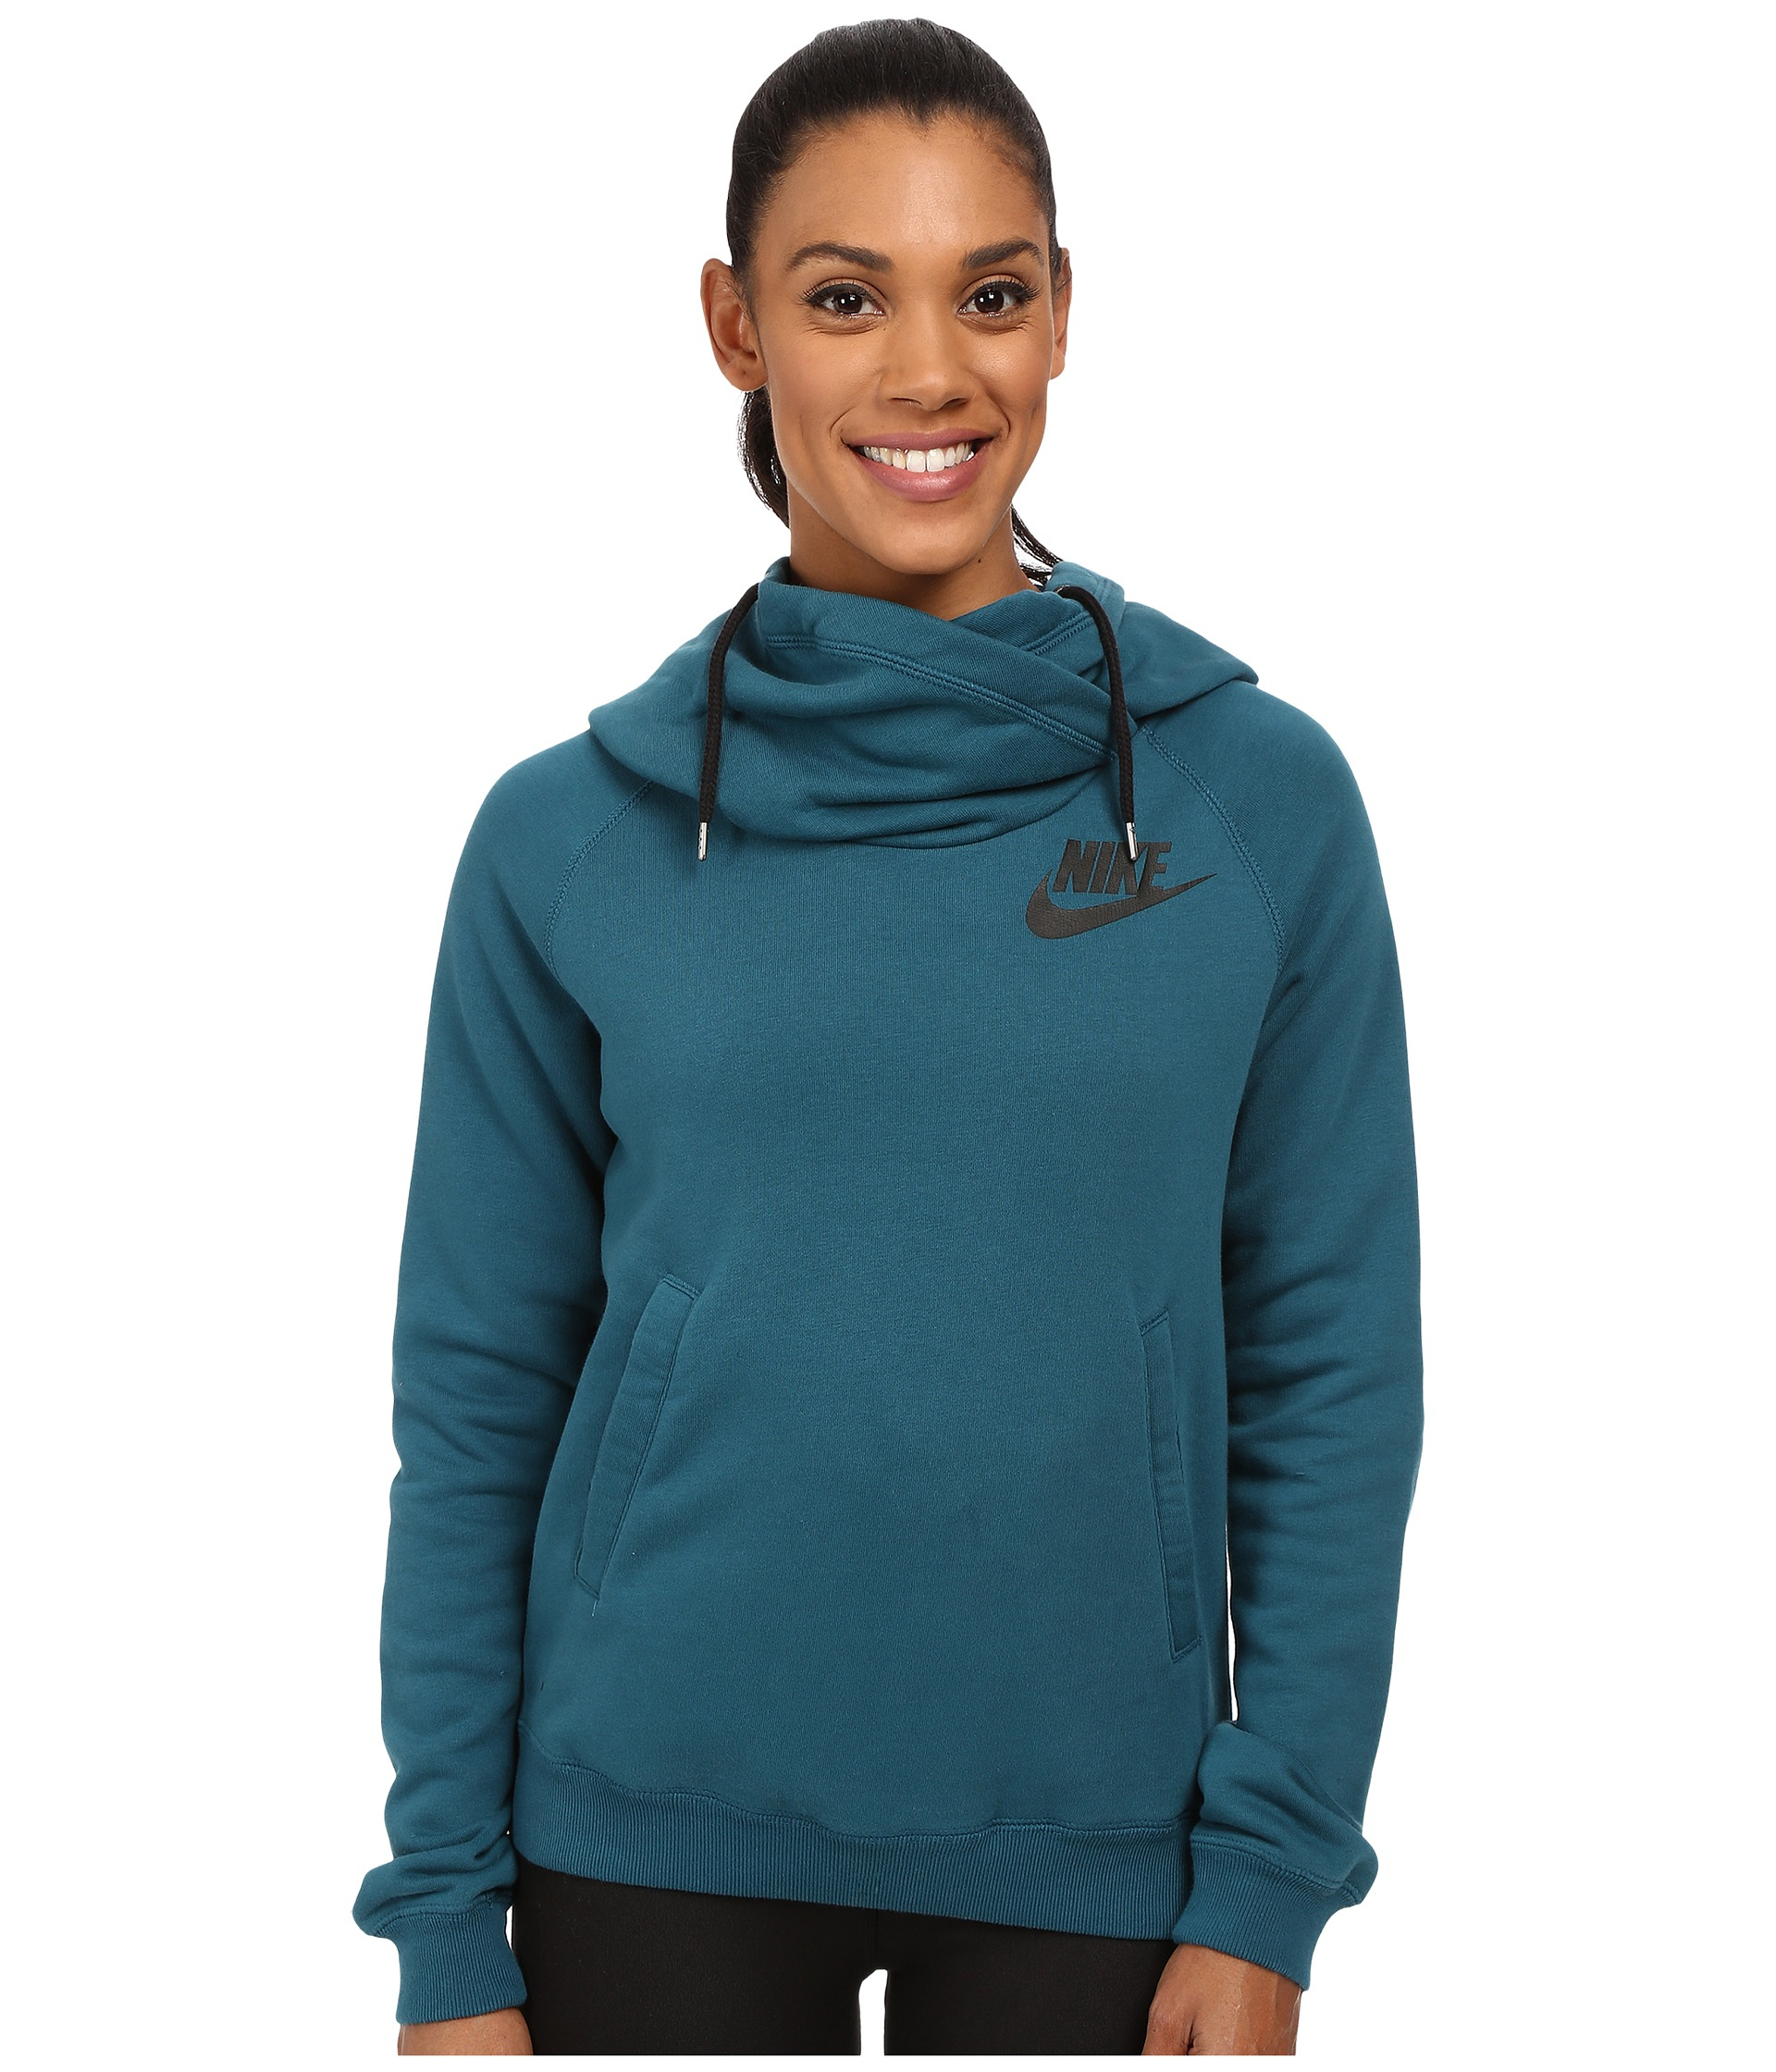 Lyst - Nike Rally Funnel Neck Hoodie in Blue c11f696d9